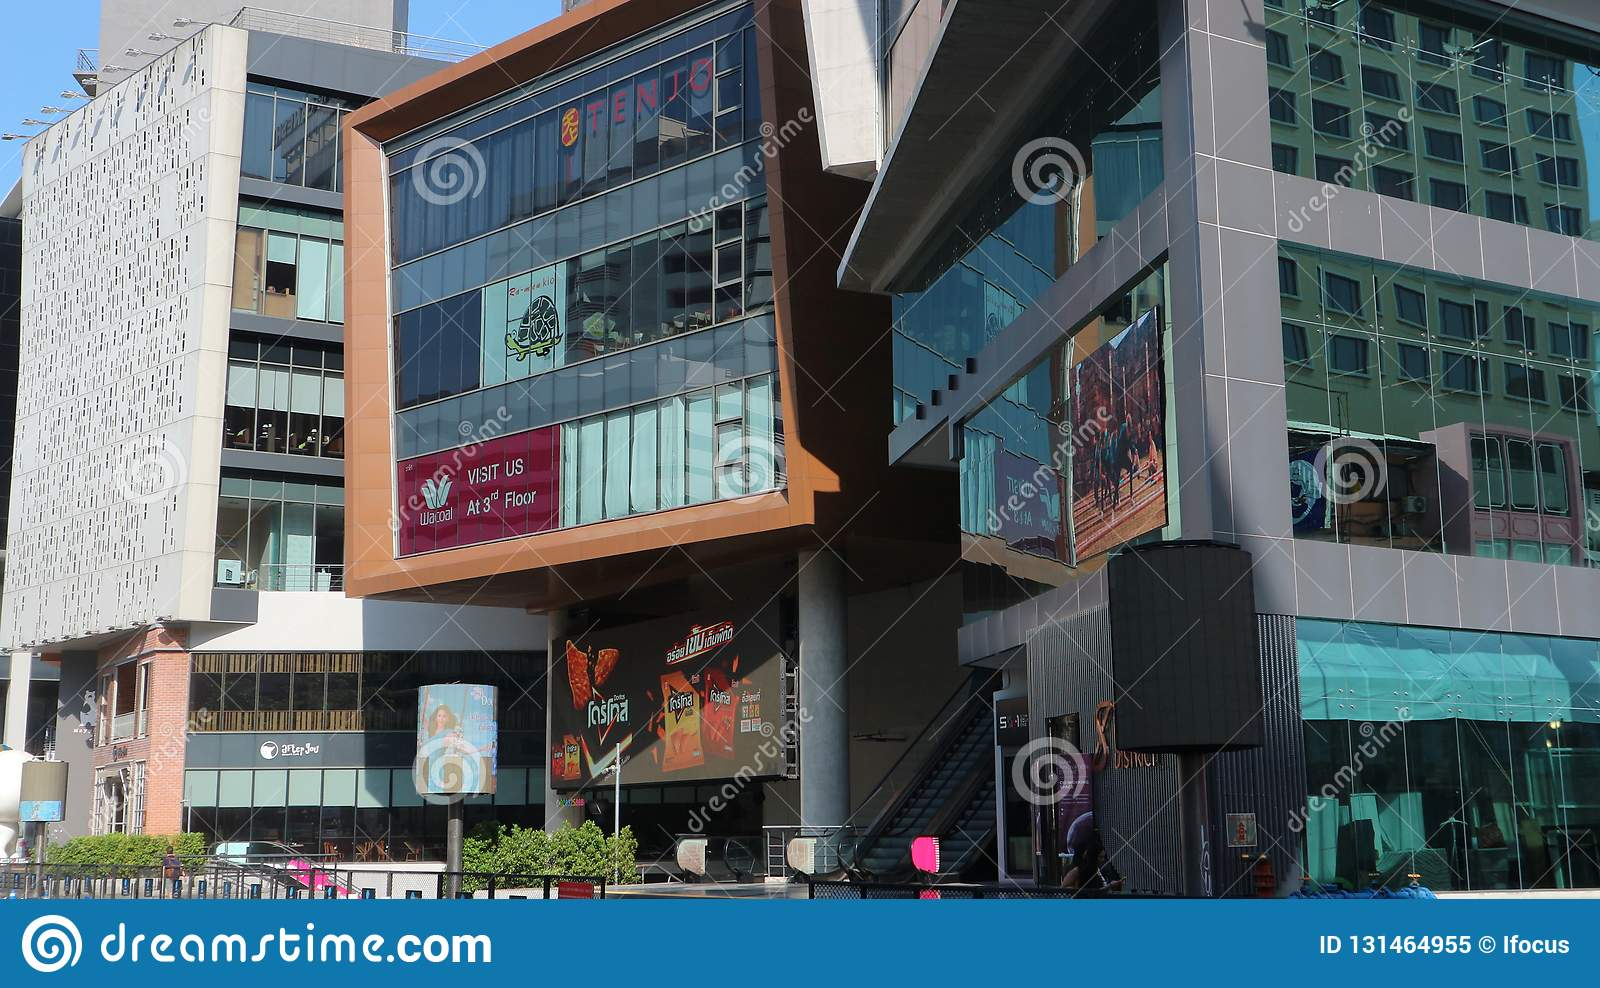 Siam Square One no longer smells of deadly sewer gas